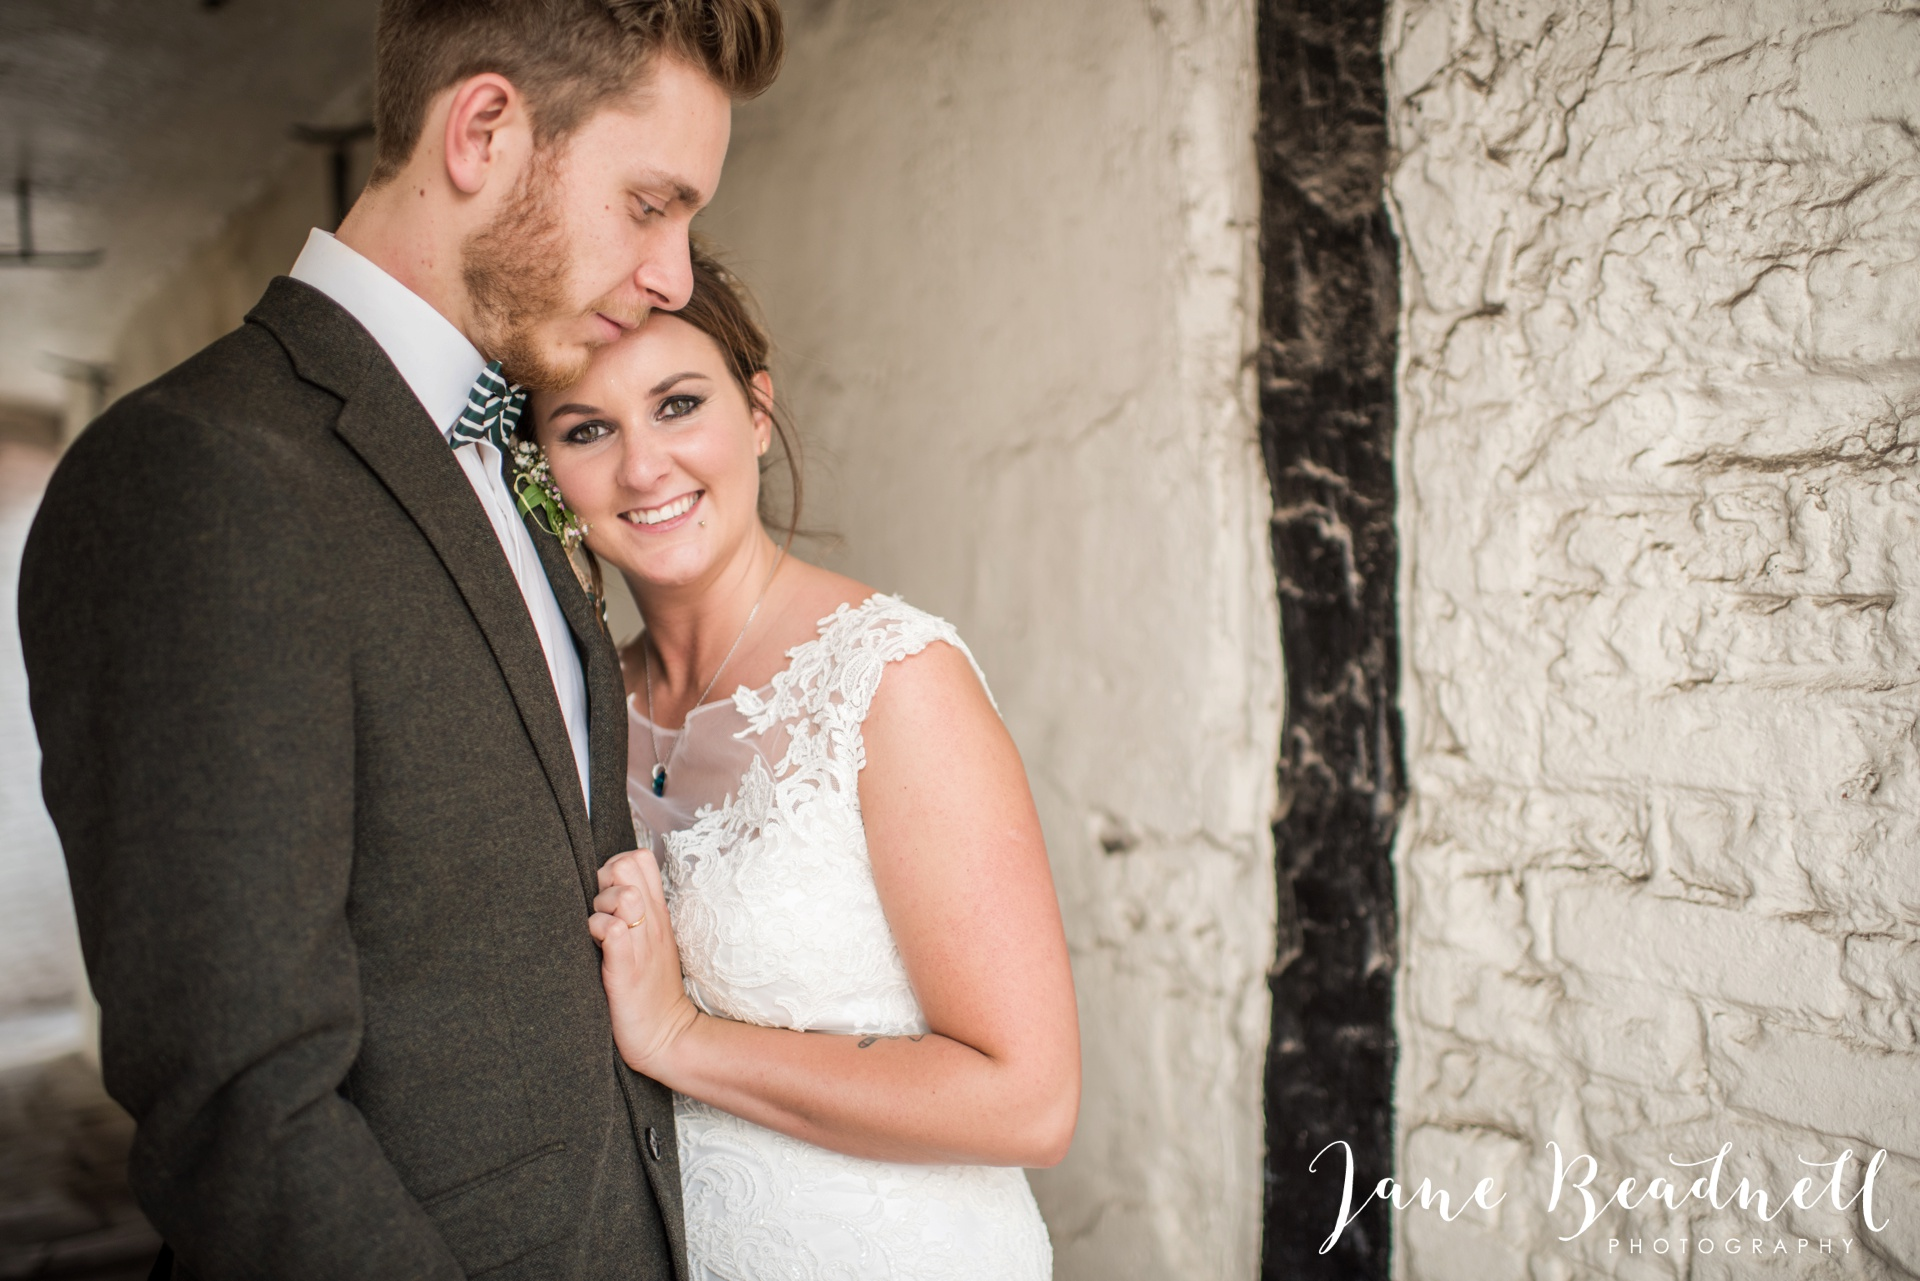 Jane Beadnell fine art wedding photographer The Old Deanery Ripon_0080